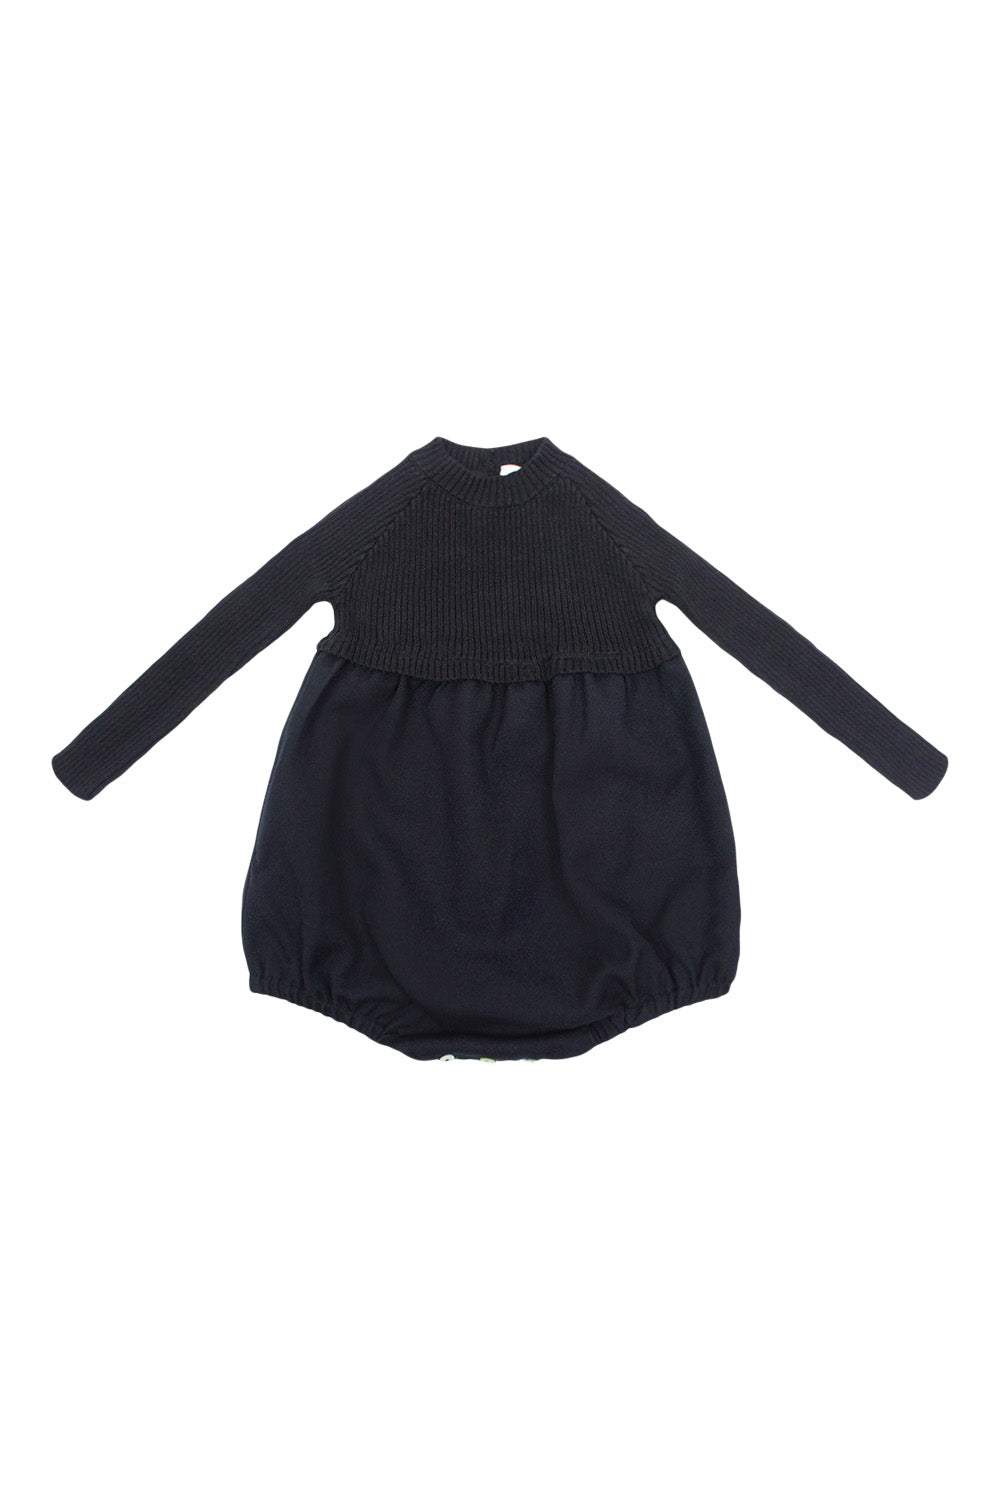 Analogie Black Knit Bubble